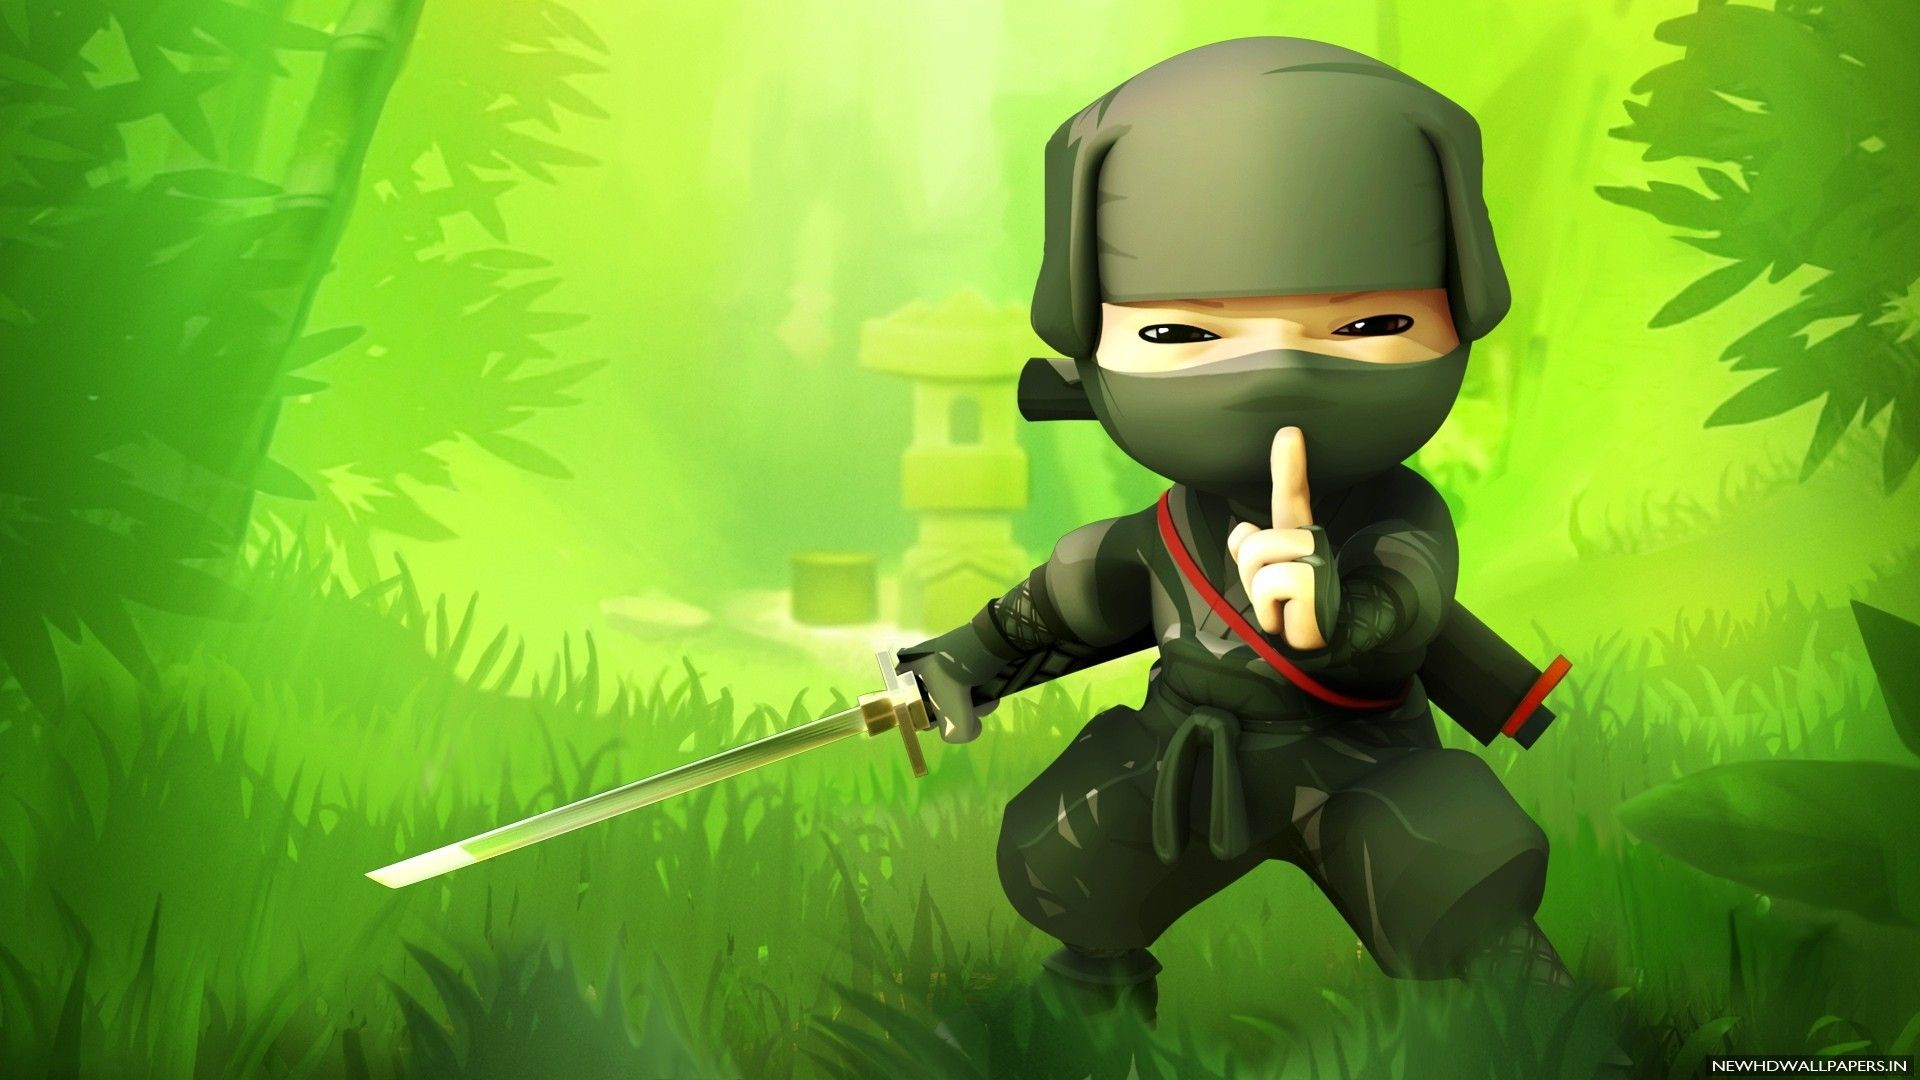 Ninja Desktop Wallpapers Wppsource 1920 1200 Ninja Images Wallpapers 53 Wallpapers Adorable Wallpap Ninja Wallpaper Anime Ninja Character Design Animation